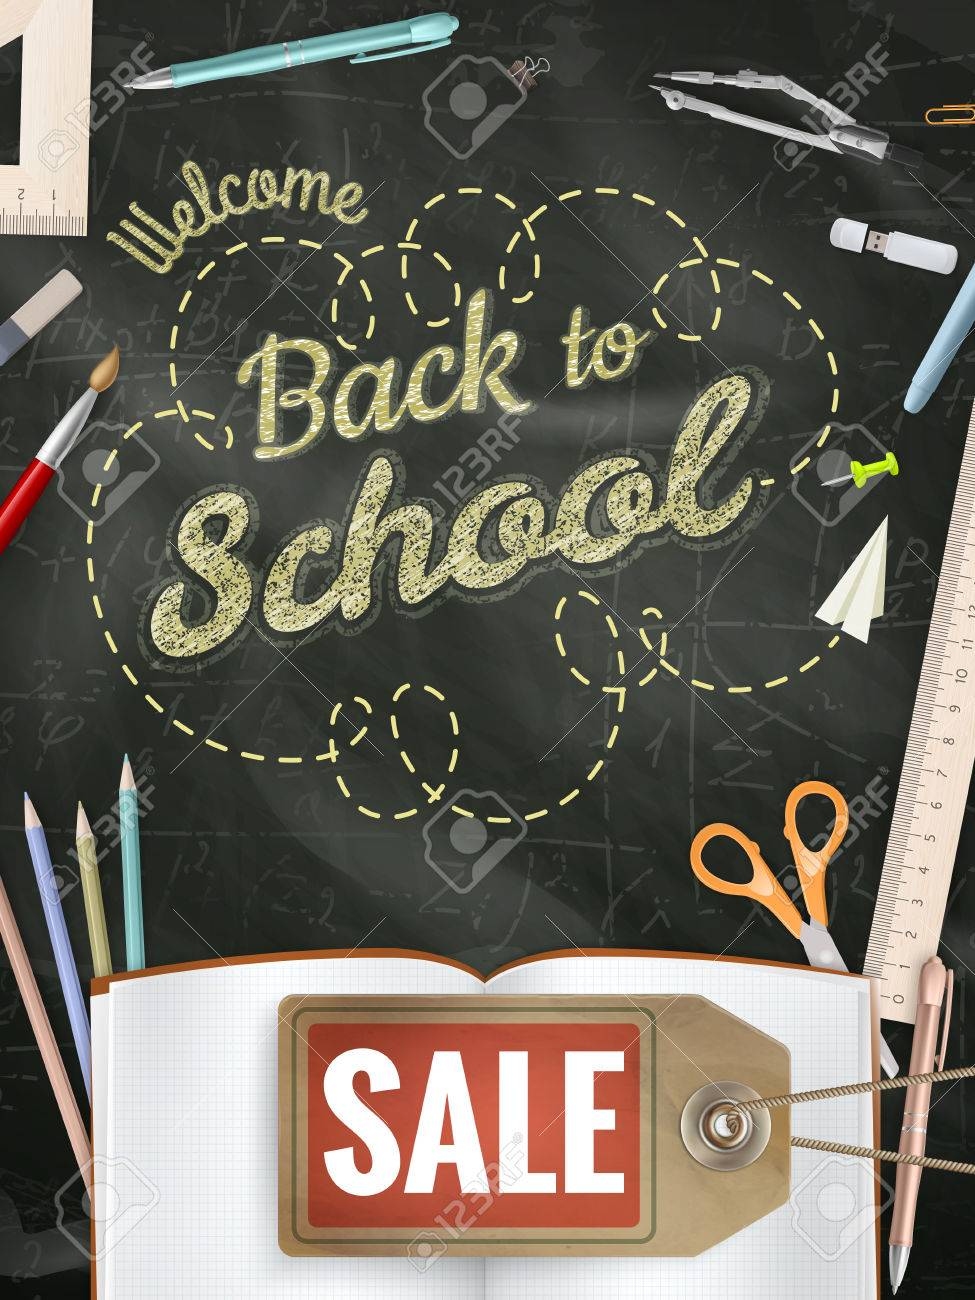 Back to School sale background. - 60195376